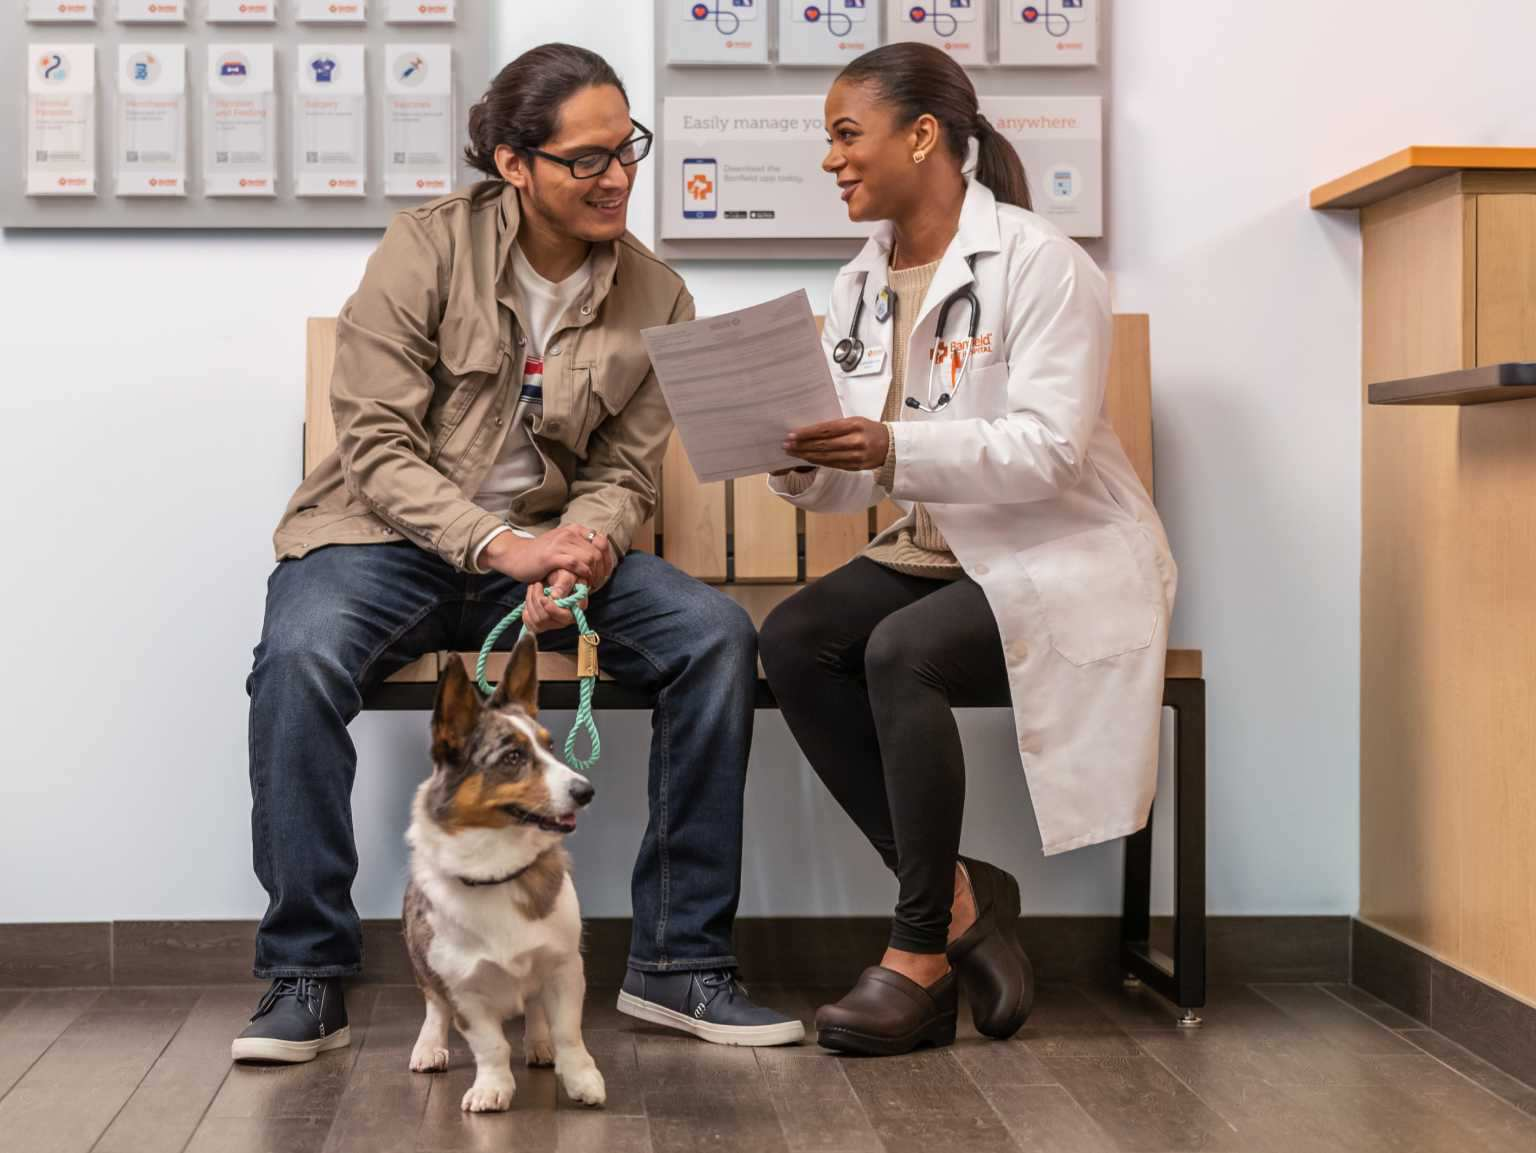 A female veterinarian explaining a medical report to a dog owner, who is holding his dog on a leash at the Banfield Pet Hospital